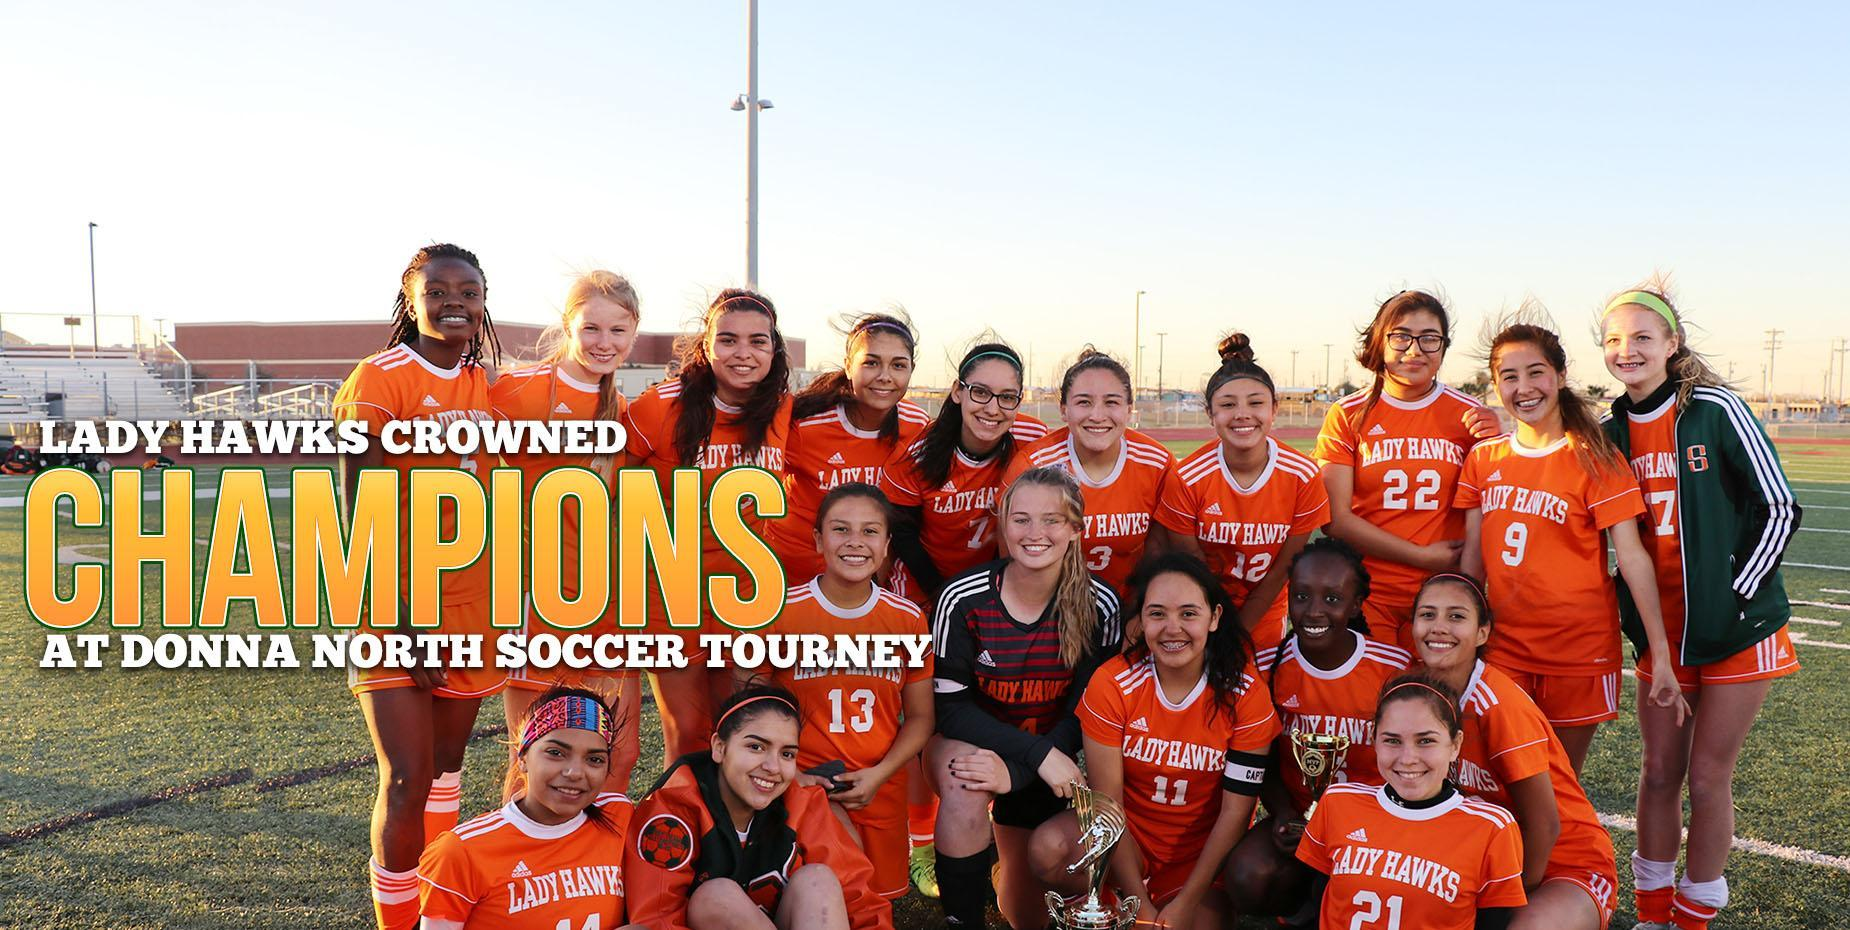 Lady Hawks crowned champions at Donna North soccer tourney